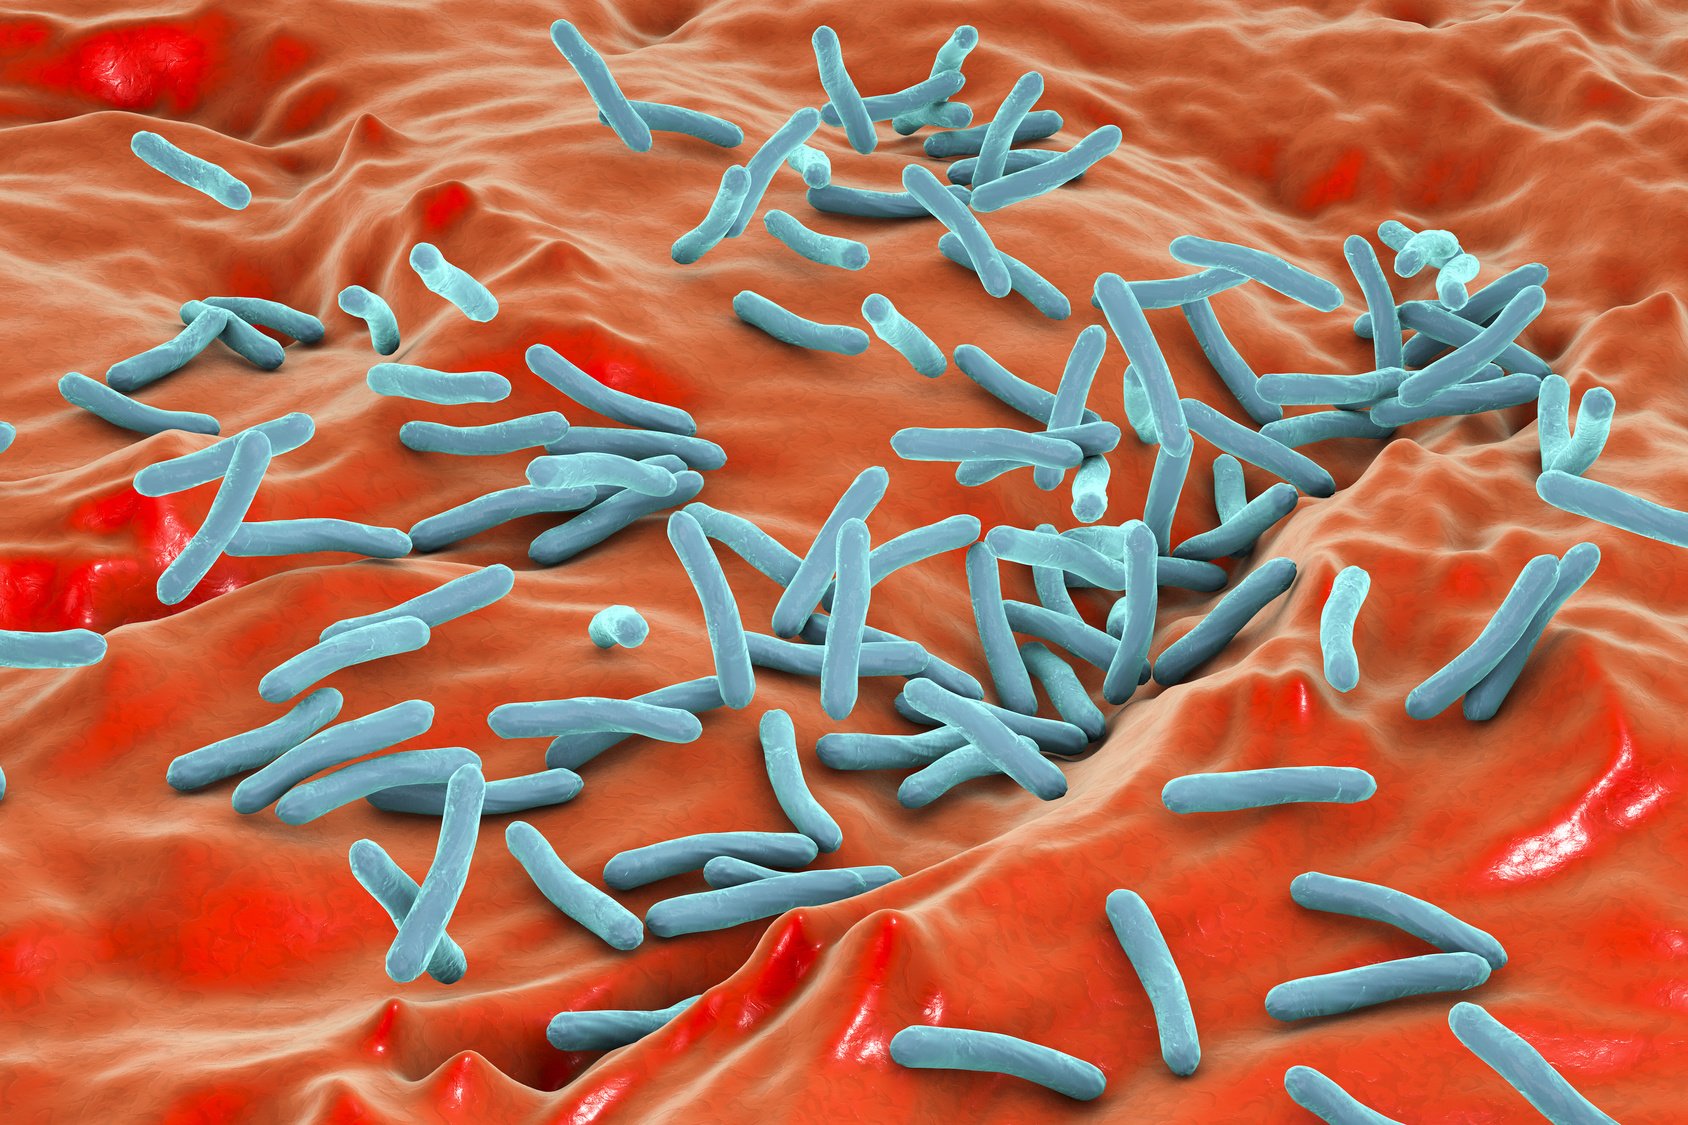 Dr_Kateryna - Fotolia - Microscopic view of bacterium Mycobacterium tuberculosis inside human body, model of bacteria, realistic illustration of microbes, microorganisms, bacterium which causes tuberculosis